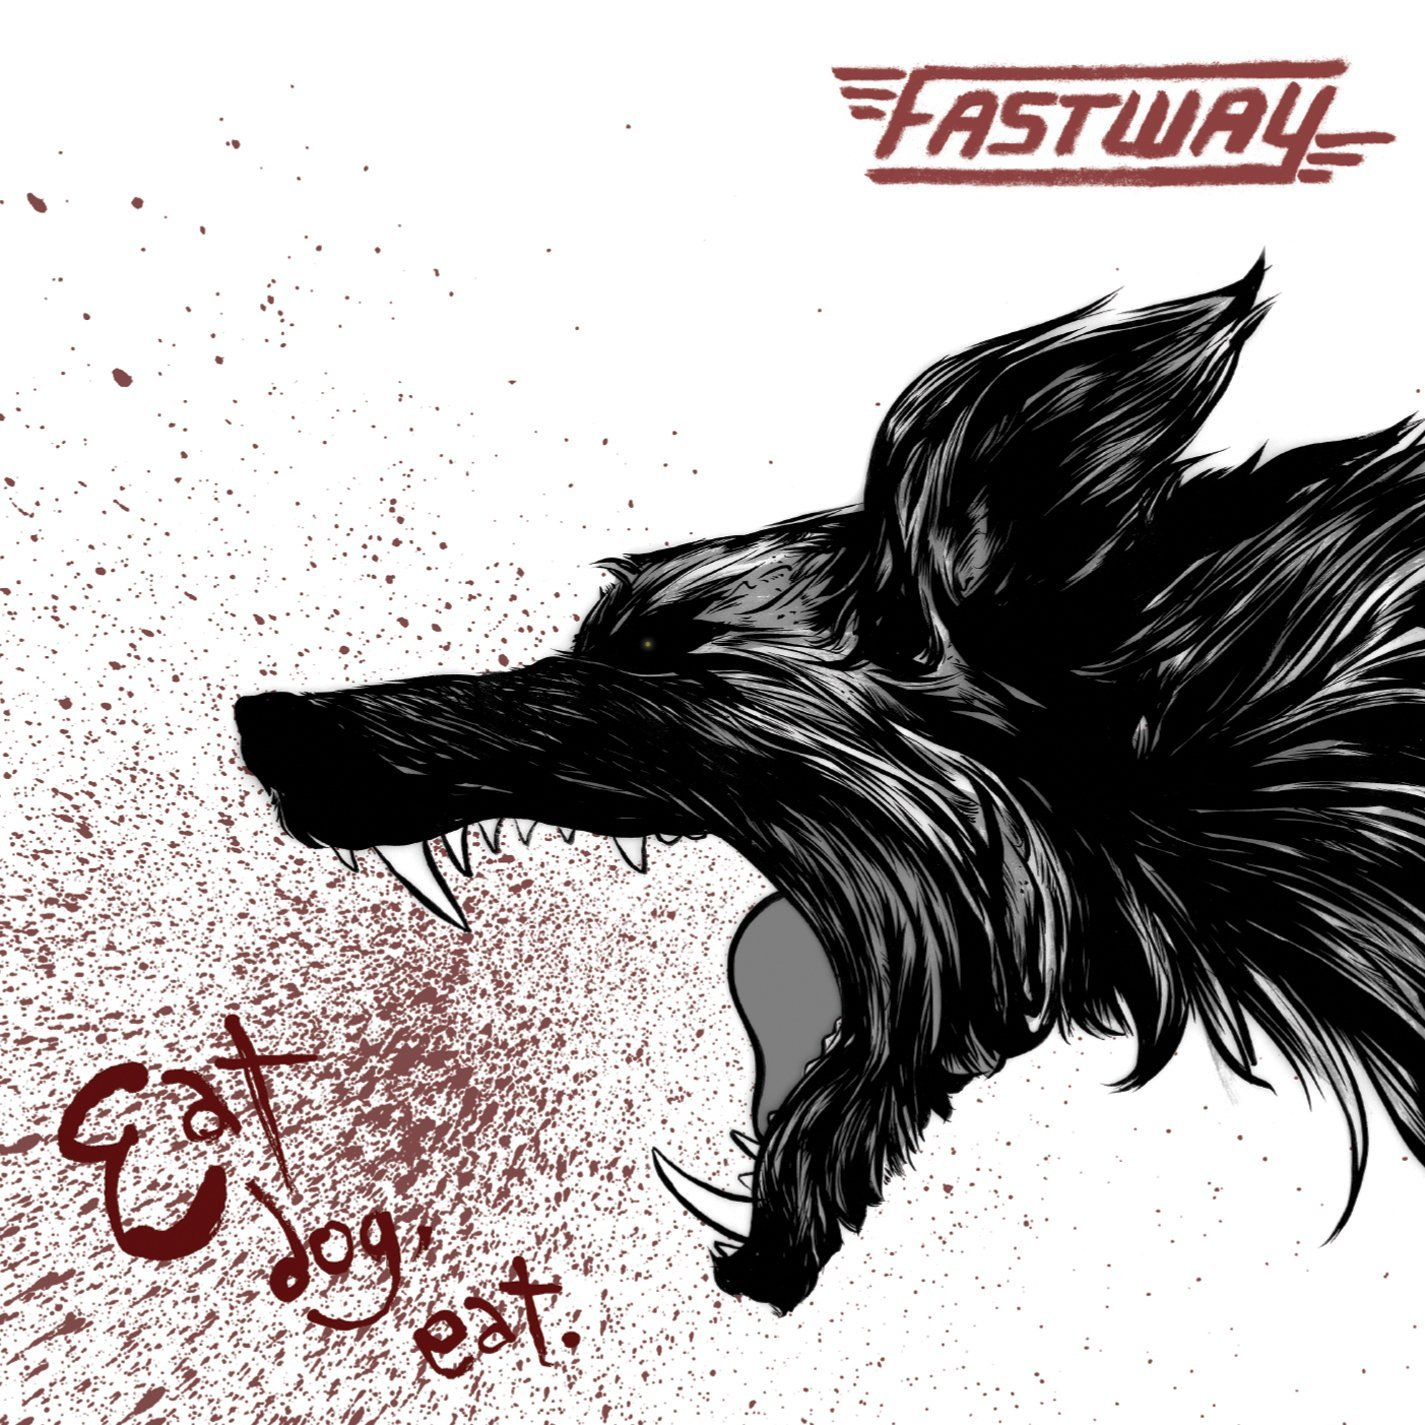 Fastway - Eat Dog Eat - Album Review